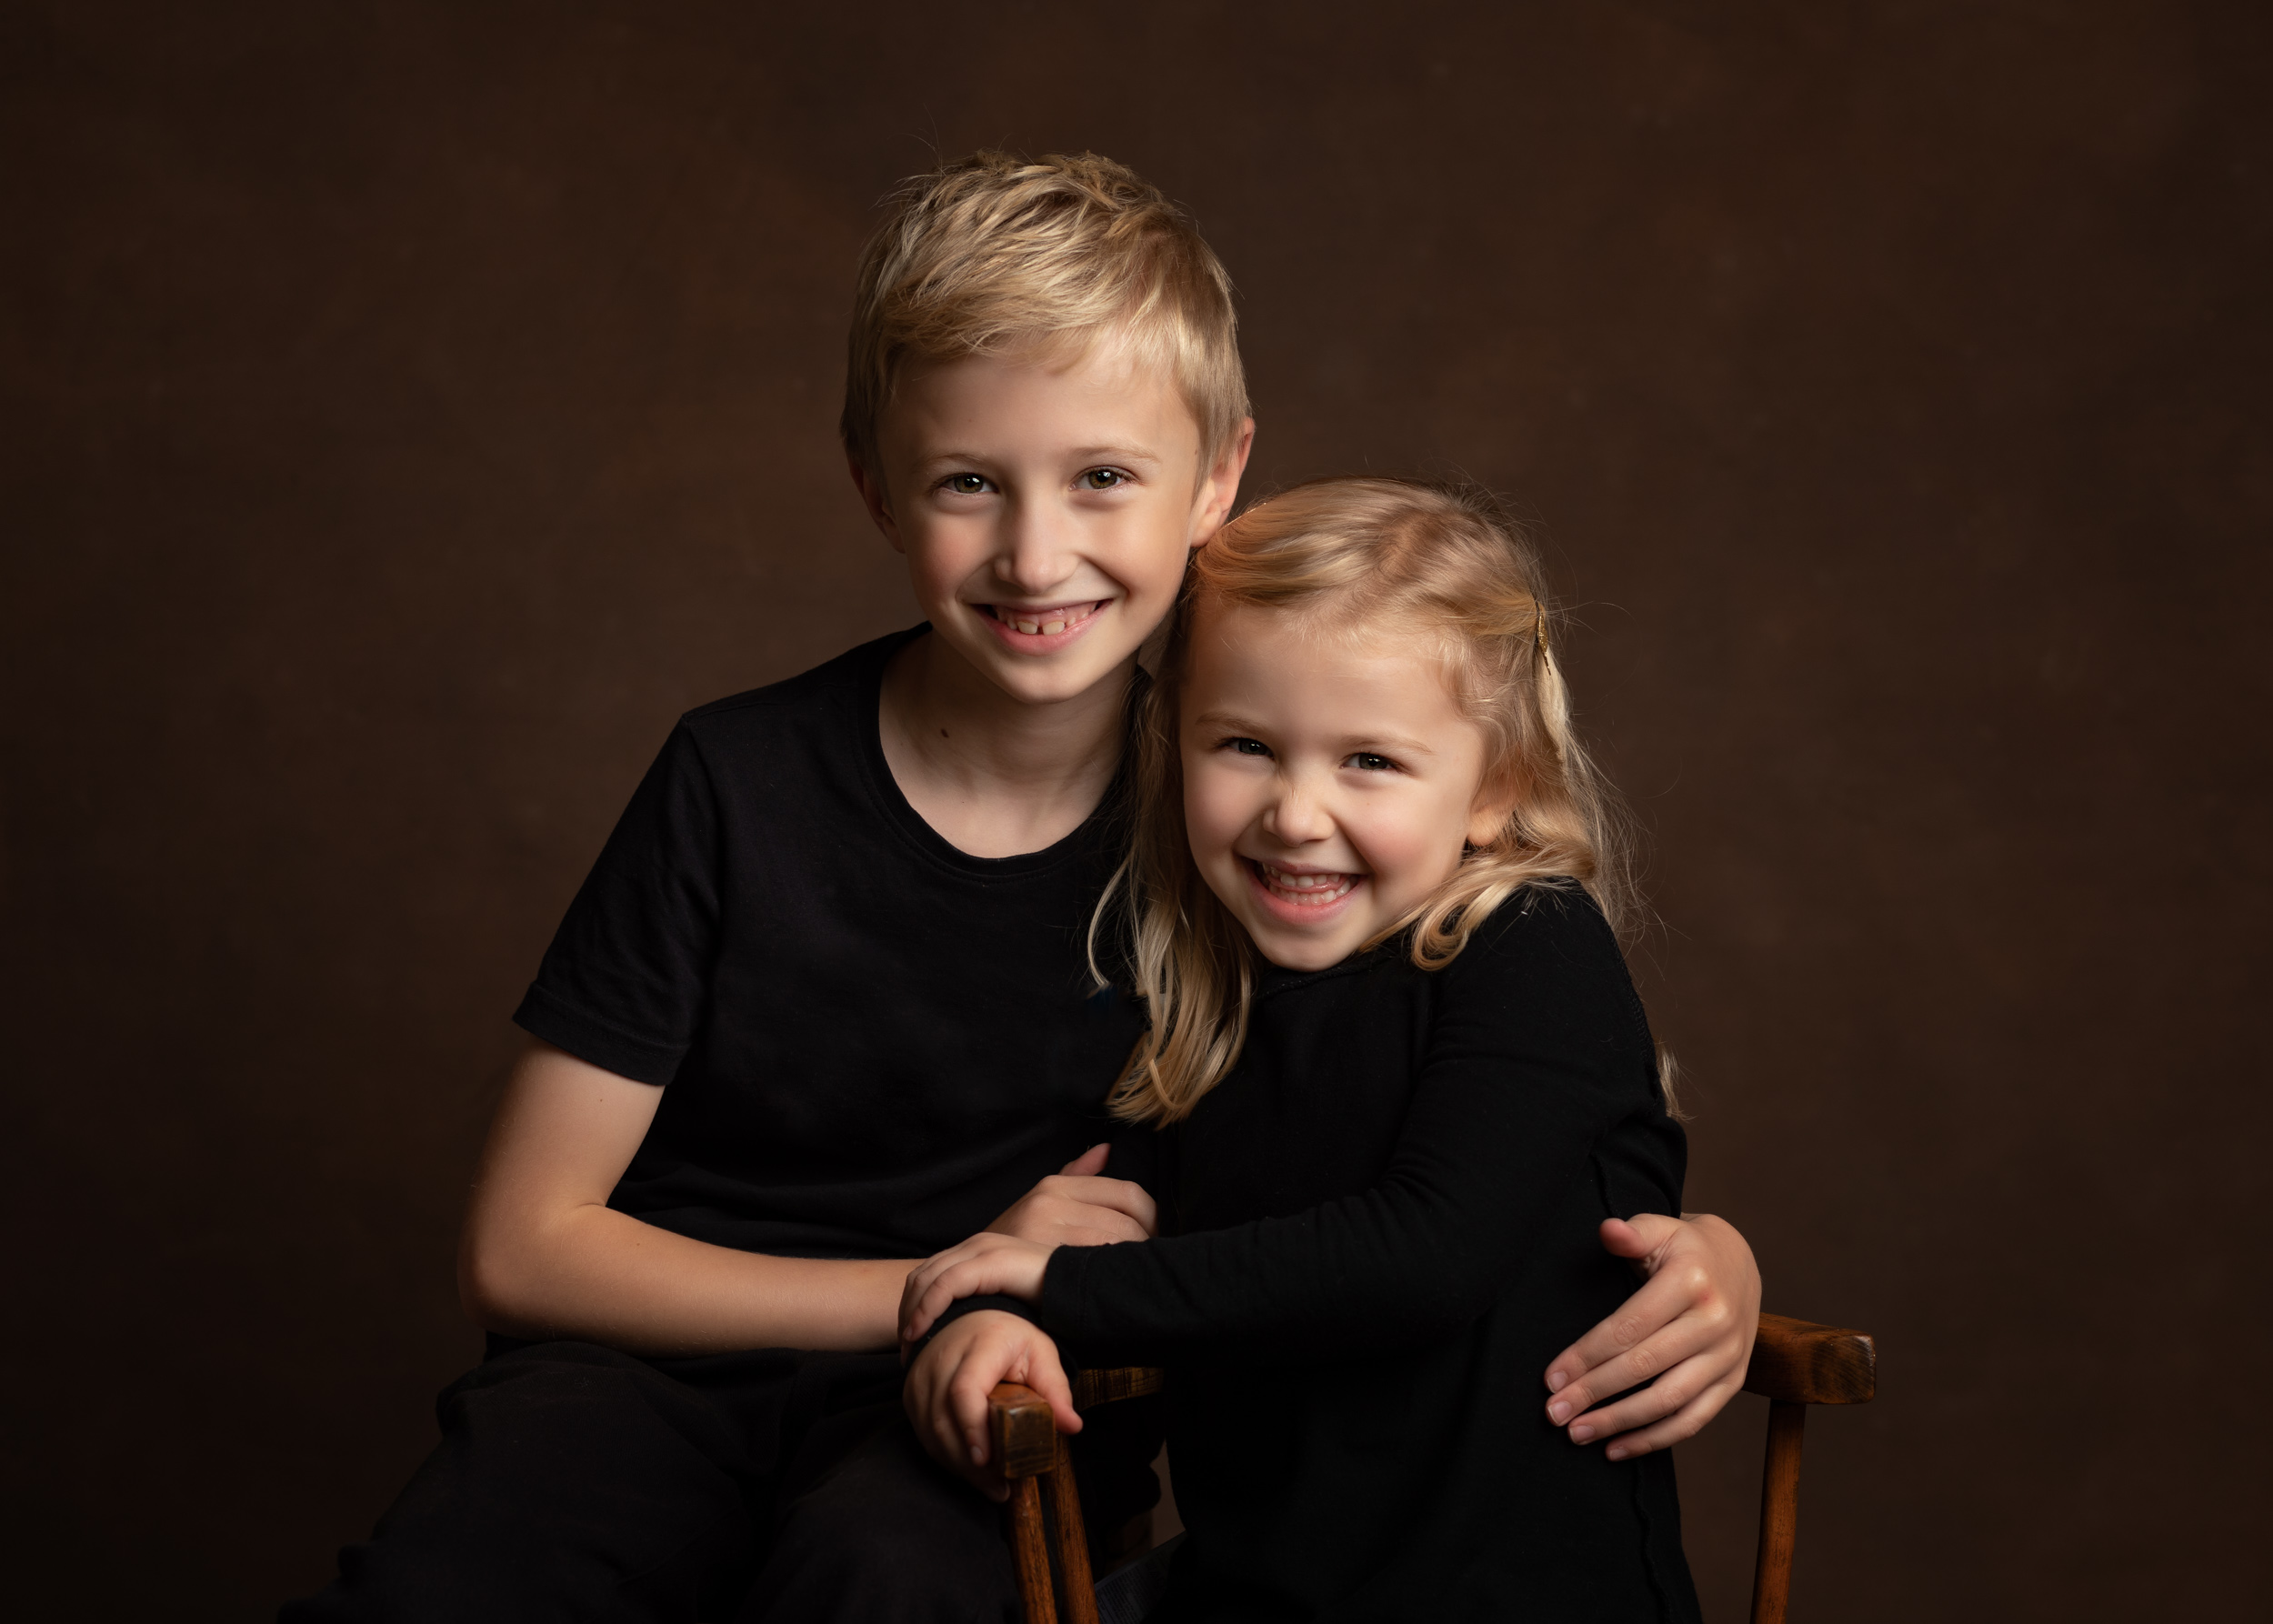 Cute blonde brother and sister posing together for their Family Portrait photo shoot in Cheshire